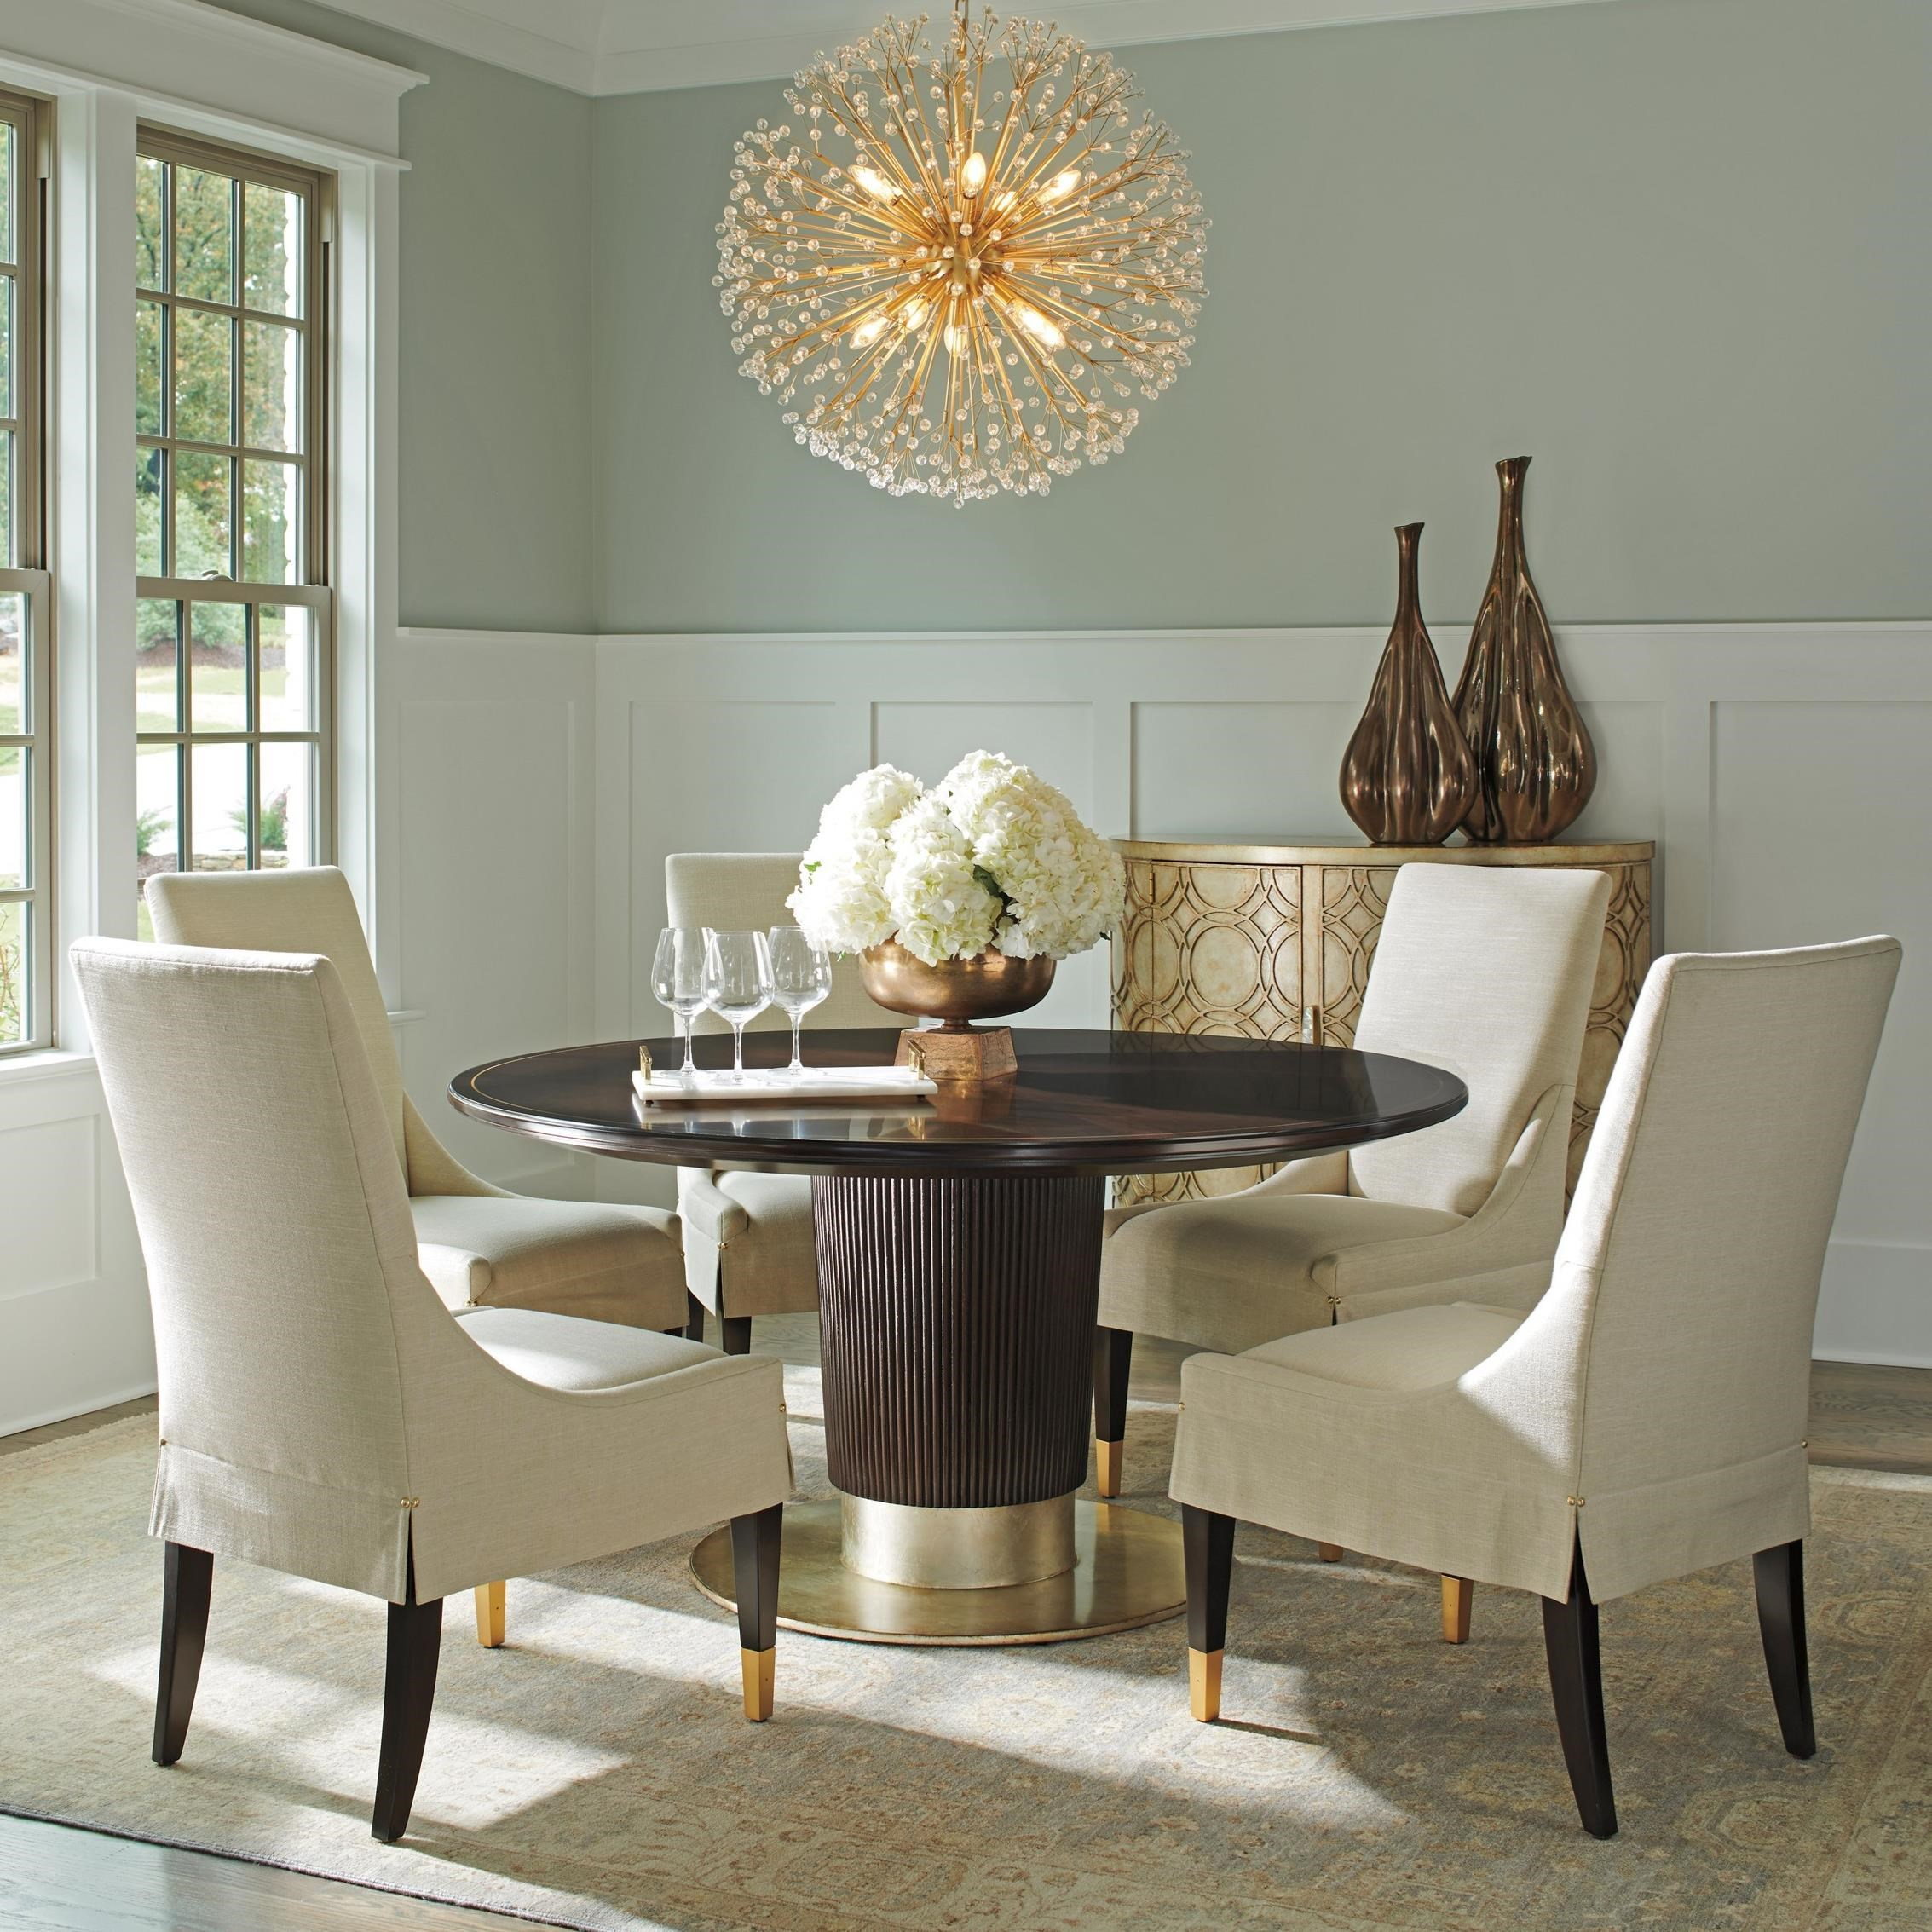 Carlyle 6 Pc Dining Set by Lexington at Johnny Janosik